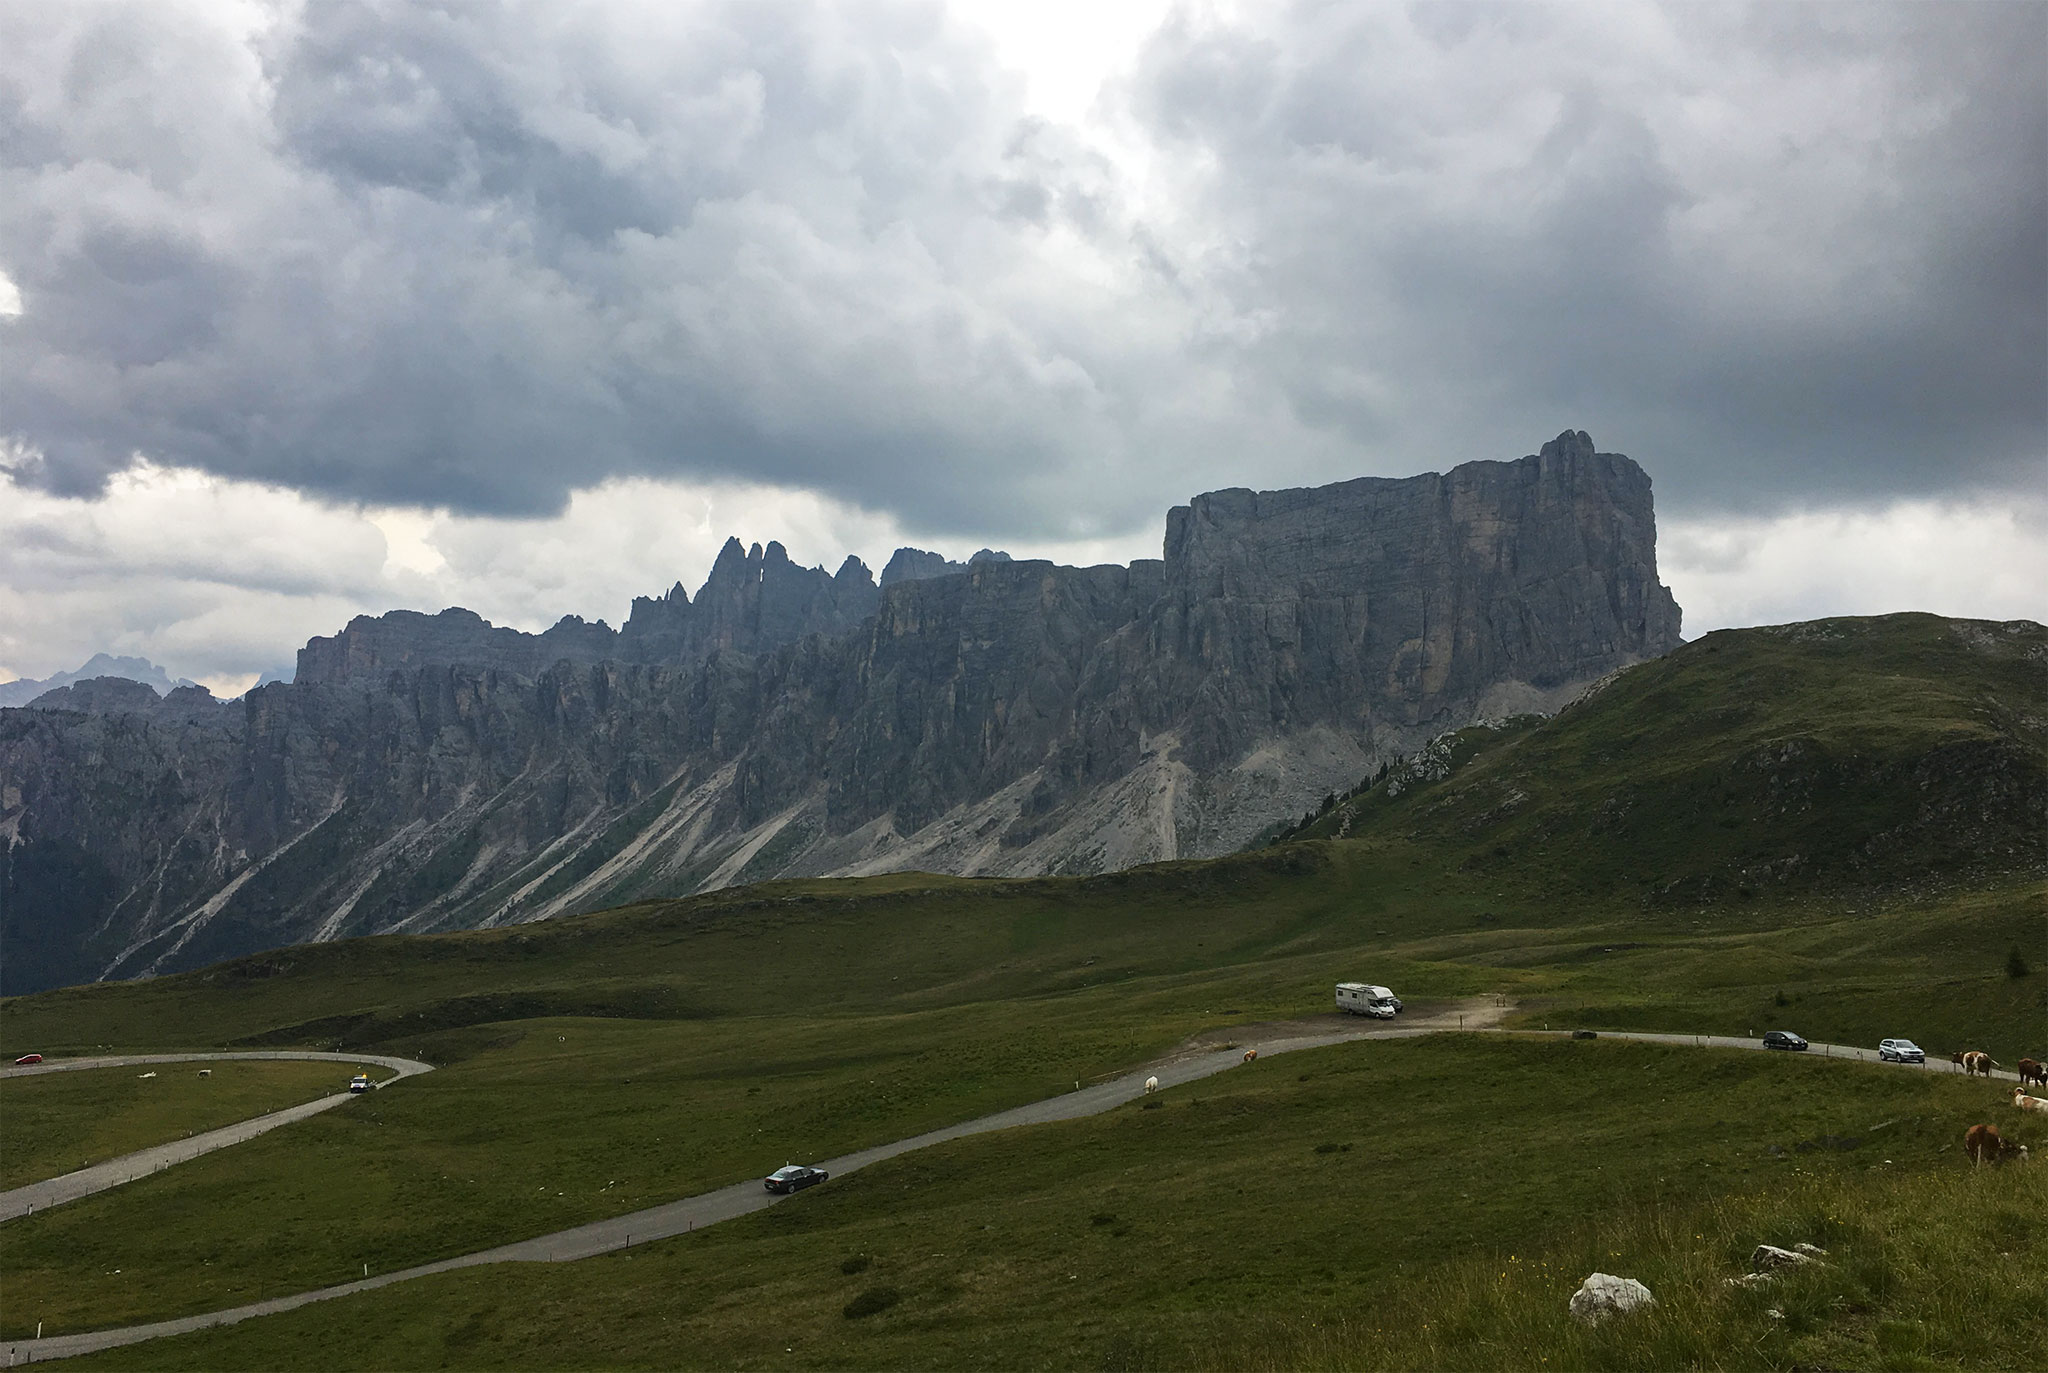 View up from towards Passo Falzarego